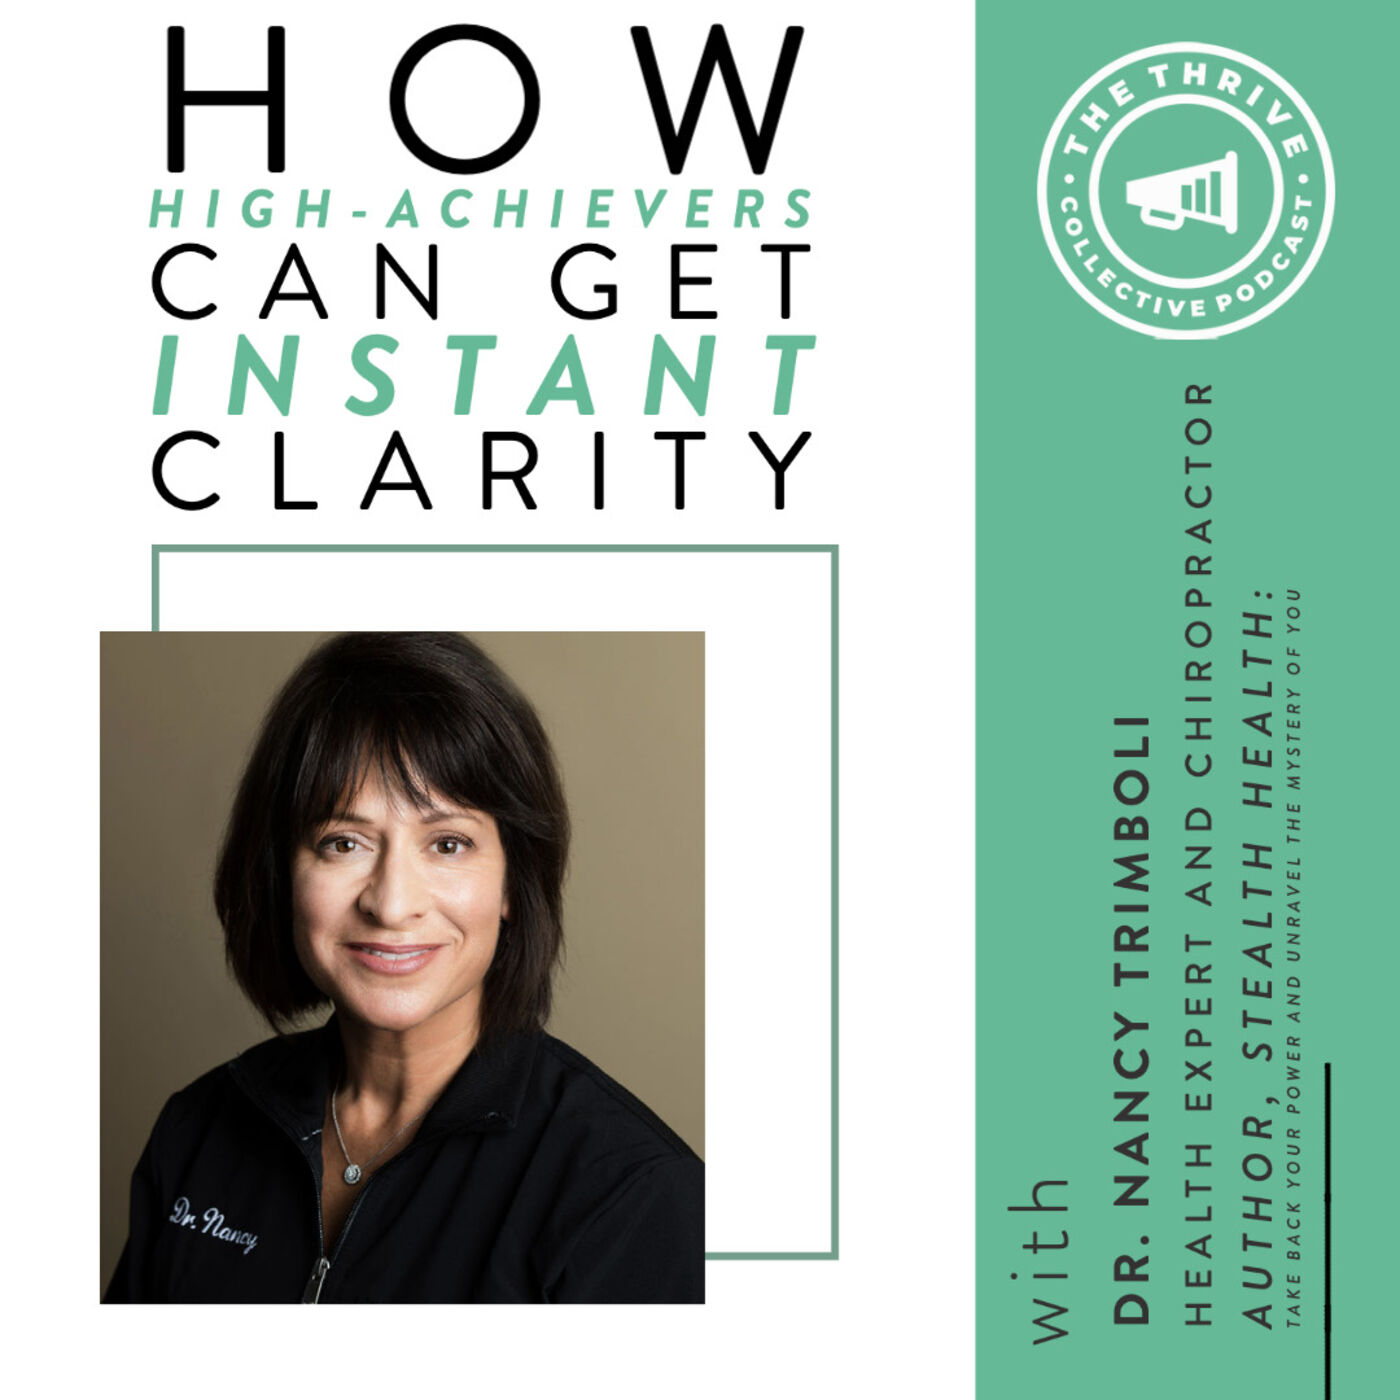 How High-Achievers Can Get Instant Clarity with Dr. Nancy Trimboli